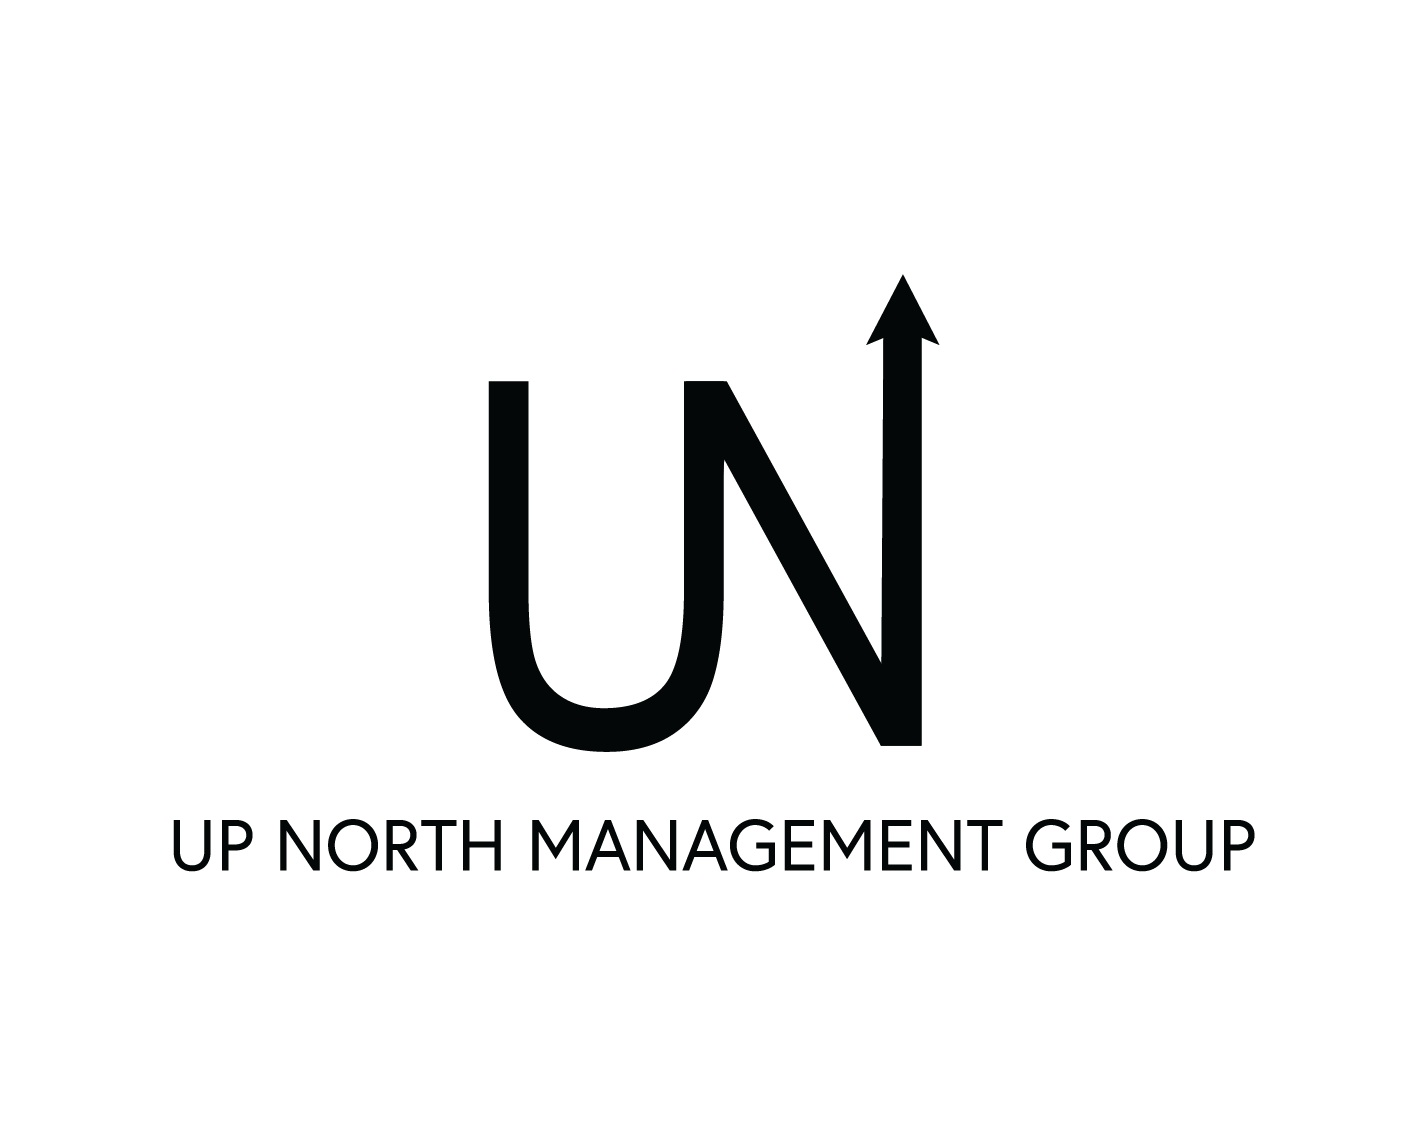 Up North Management